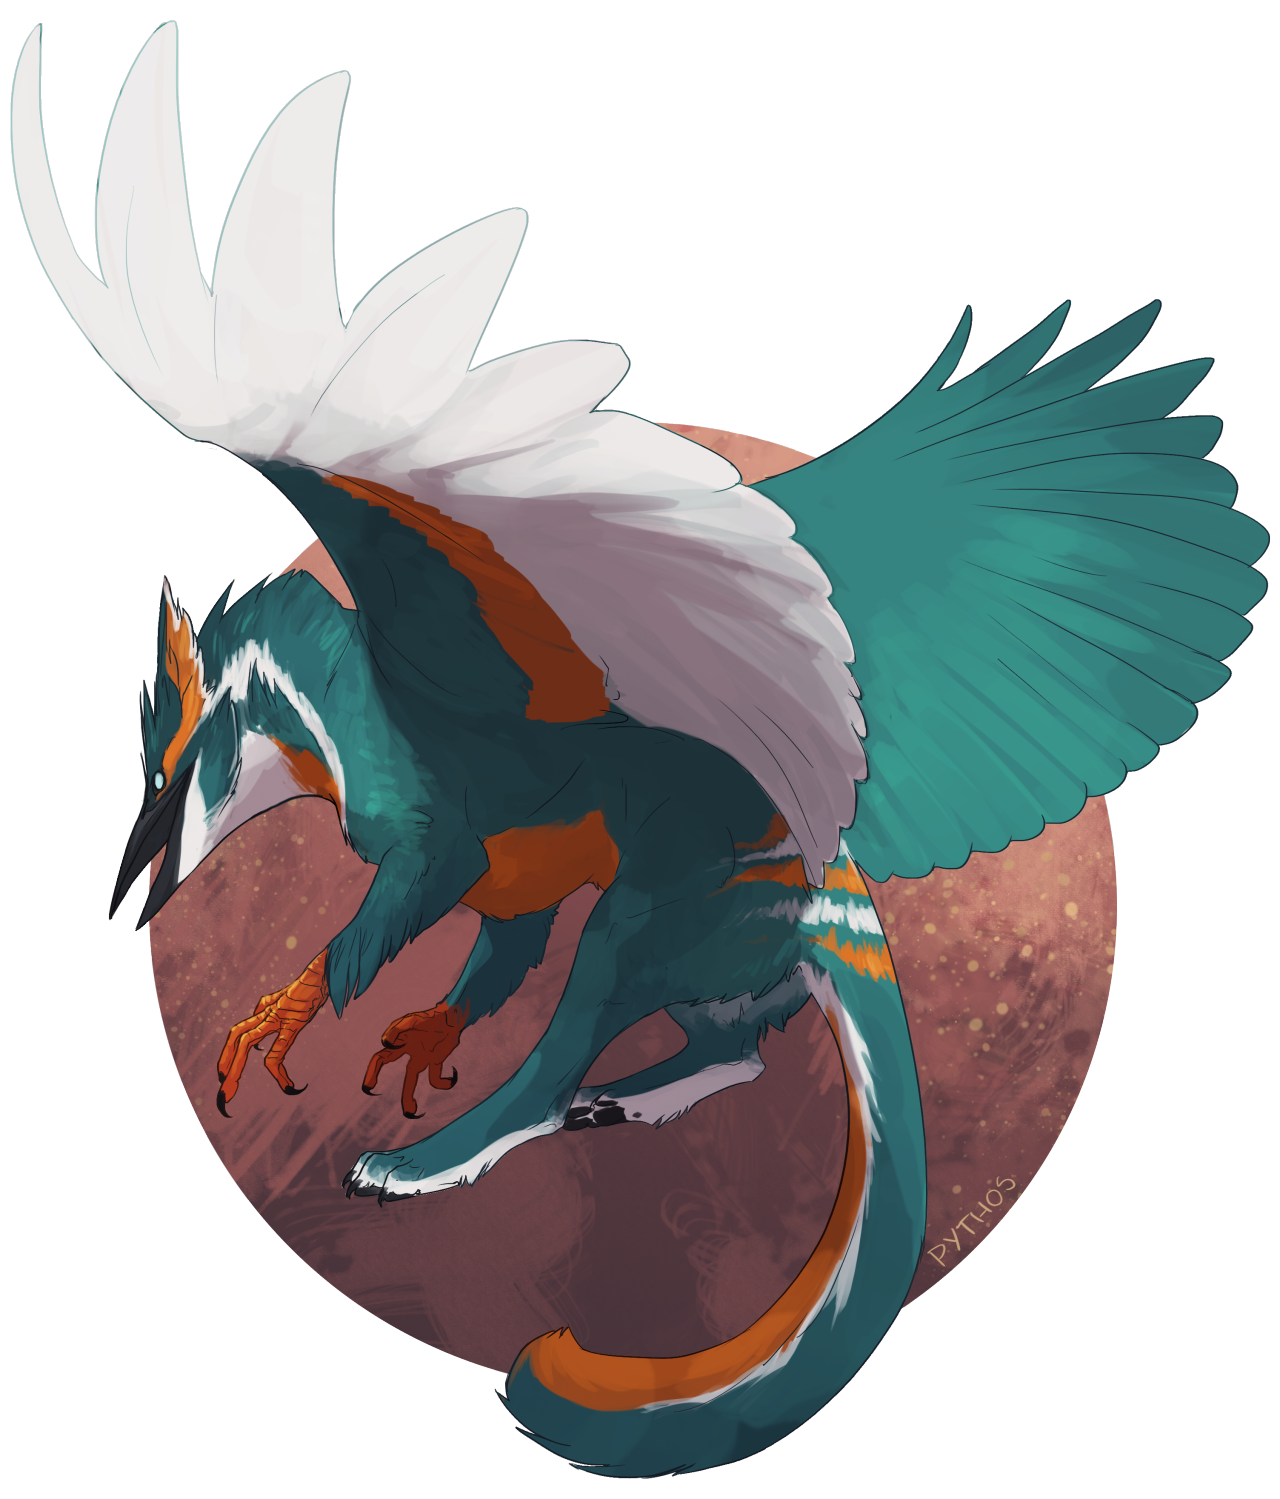 Commission for Kingfisher-Gryphon on dA!